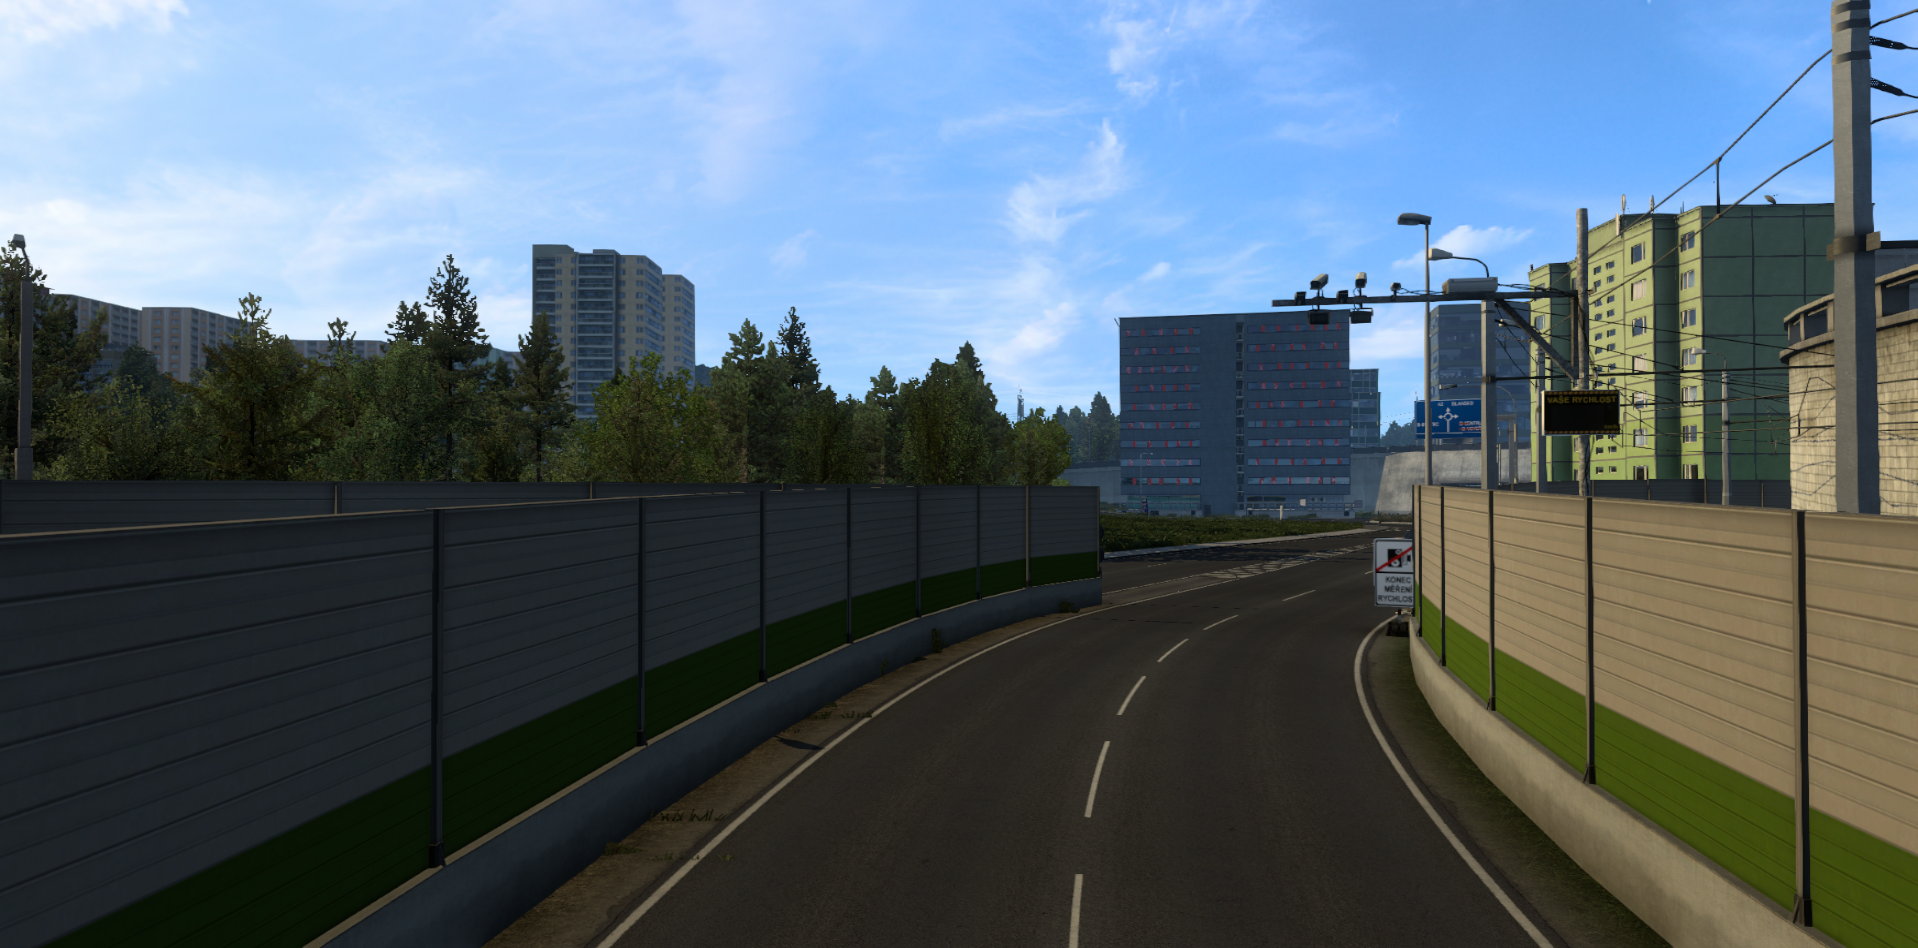 ets2_20210326_204002_00.png